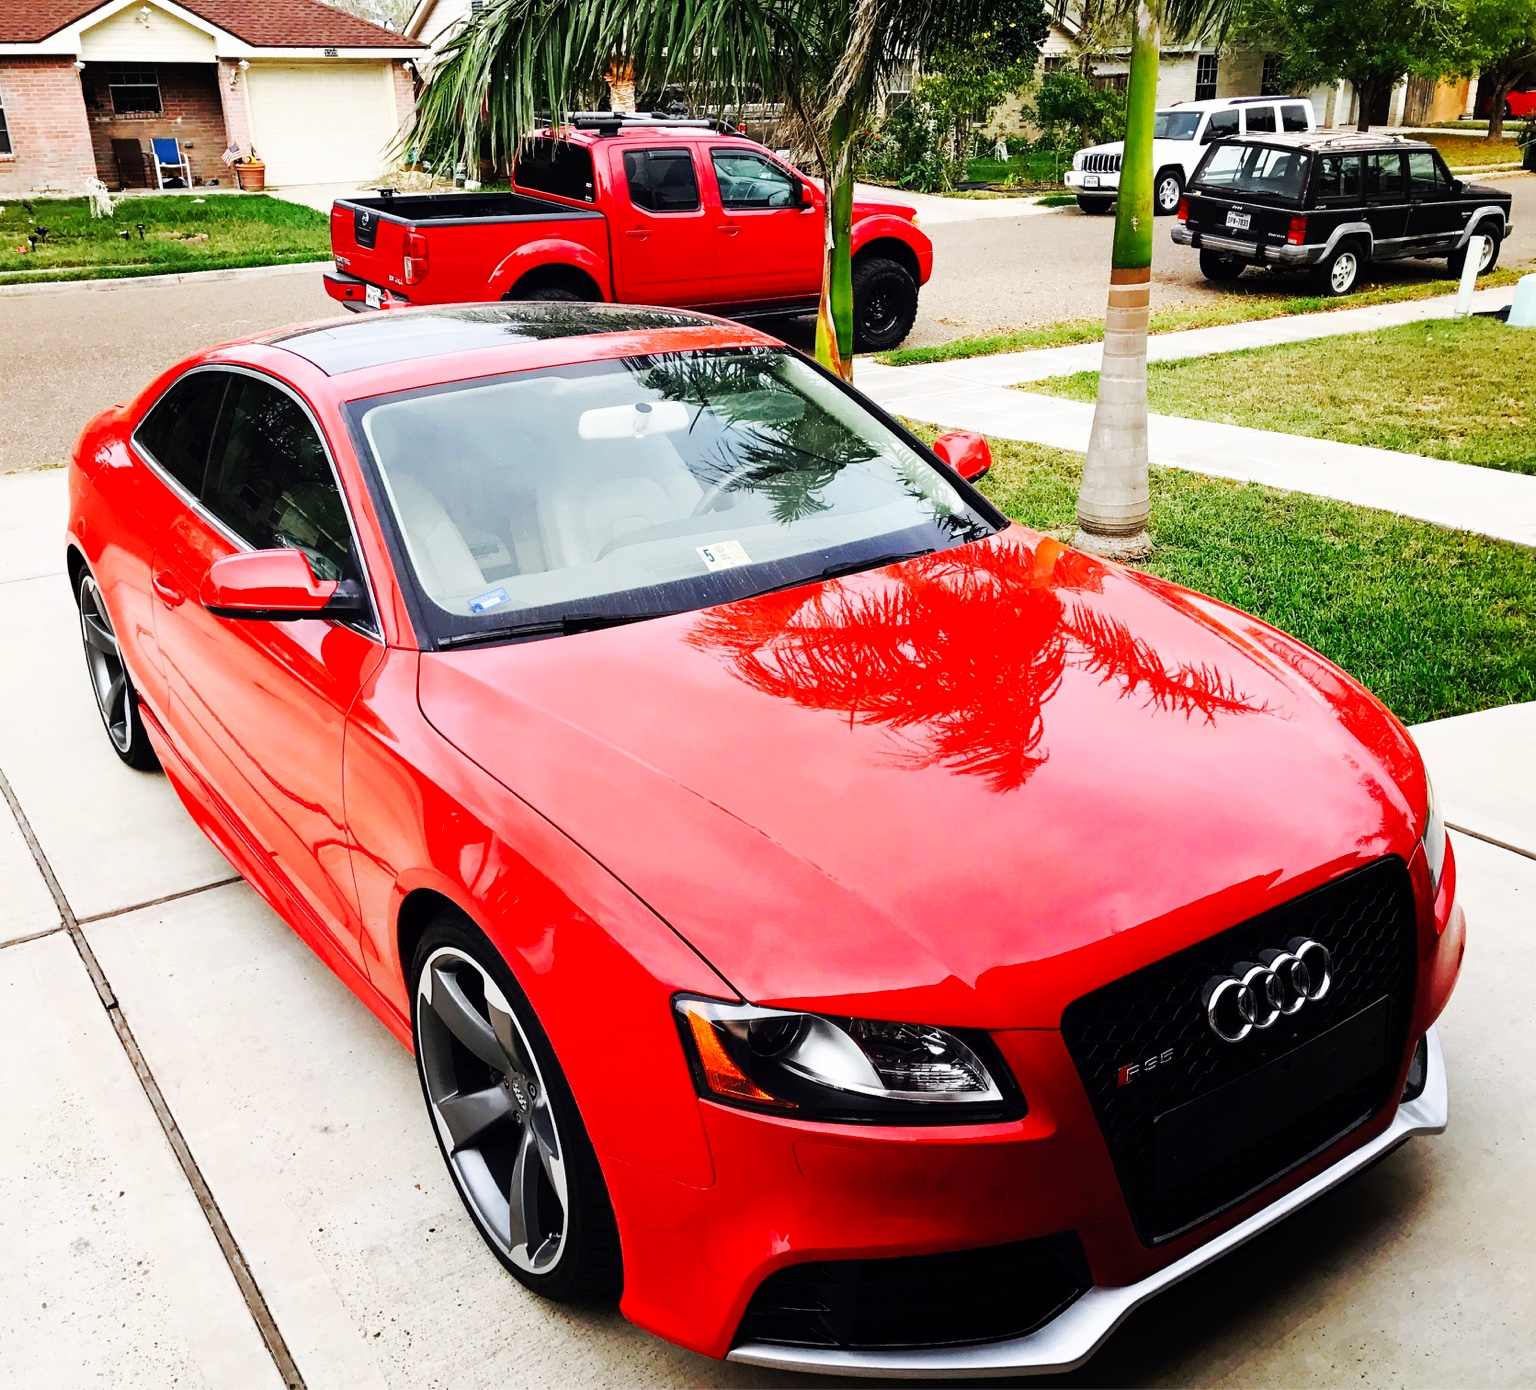 Audi A5 Lease Price: My Brillian Red